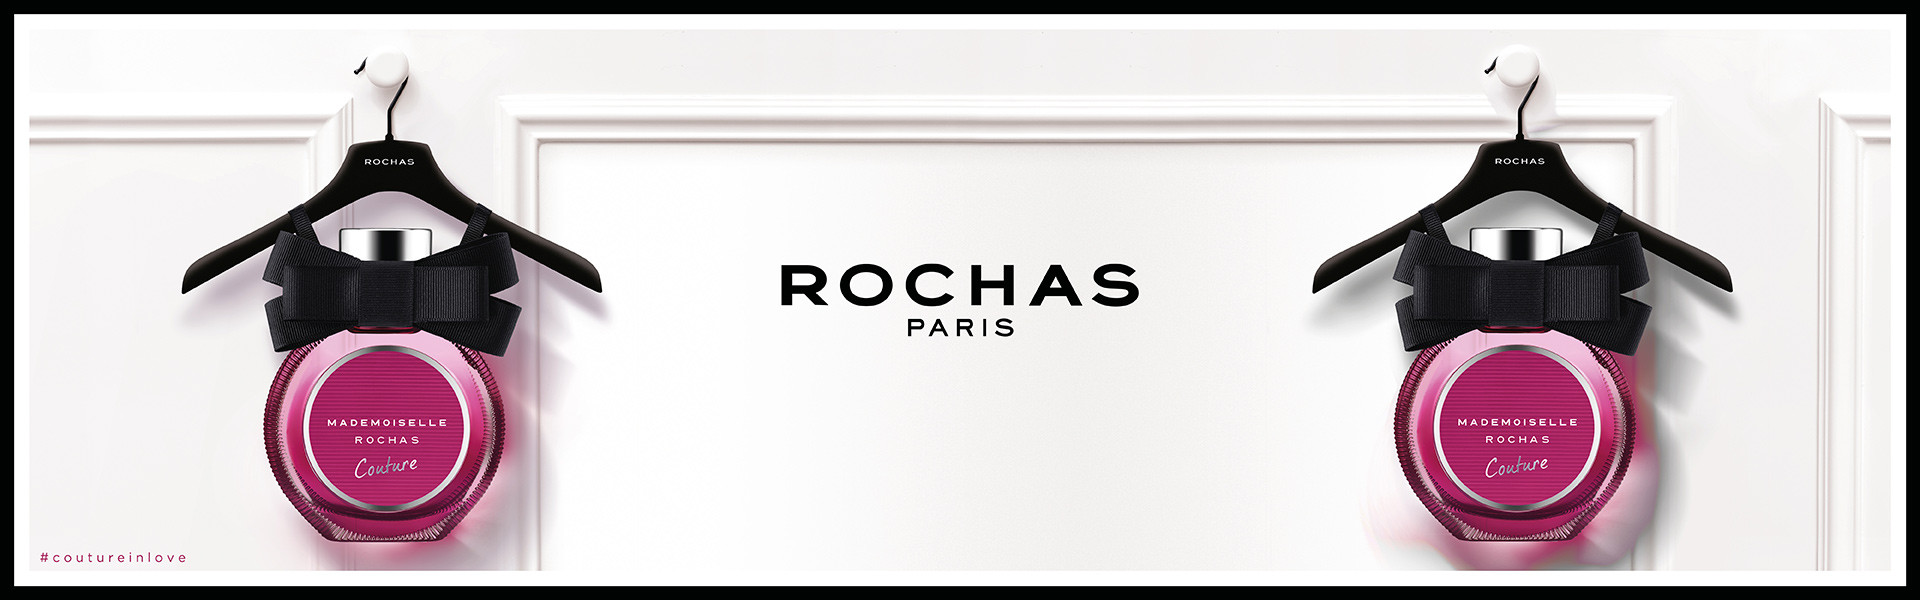 Discover Rochas Mademoiselle Couture, the new perfume for her